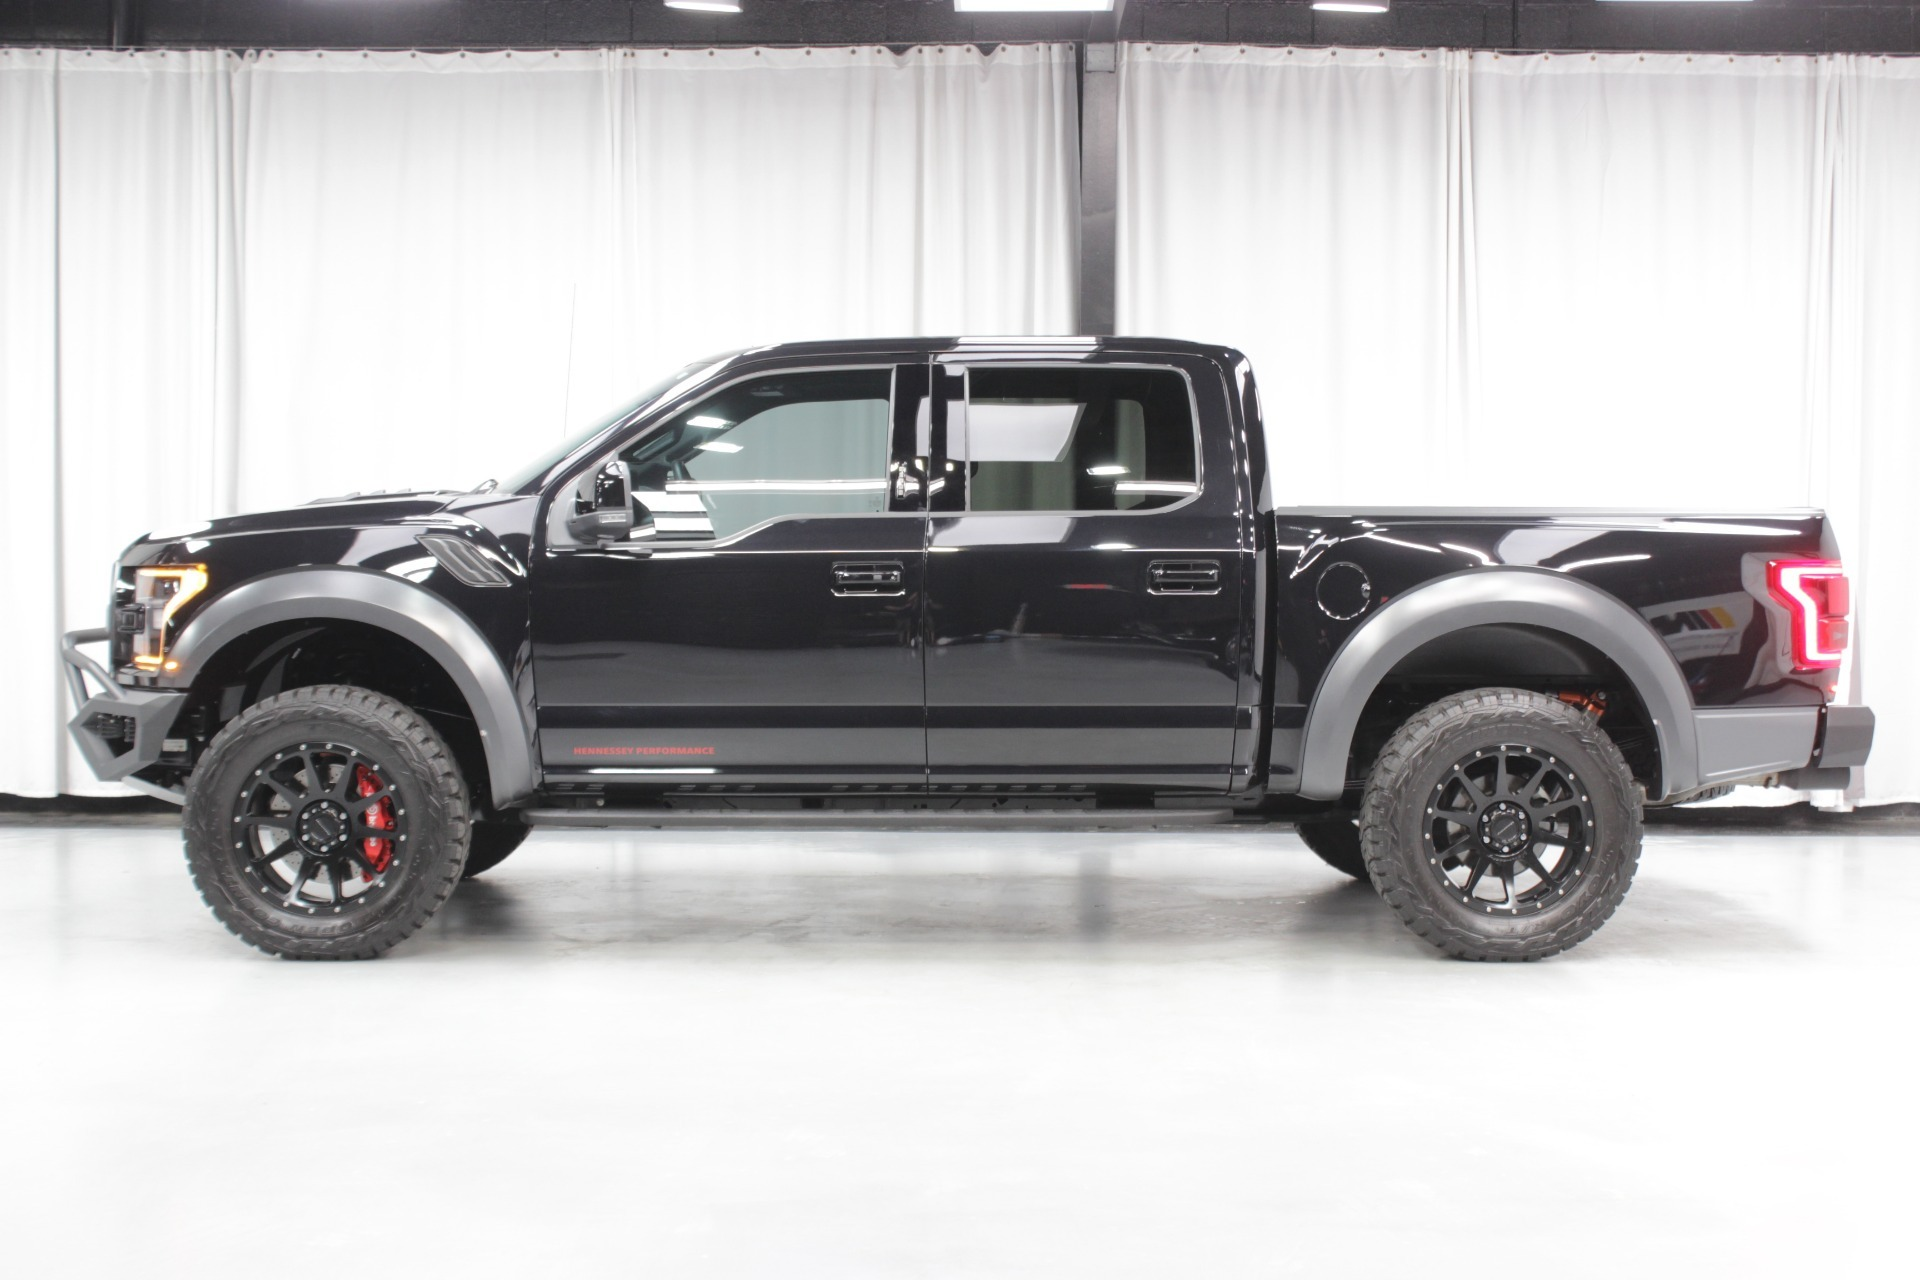 Used 2019 Ford F-150 RAPTOR 4x4 HENNESSY VELOCIRAPTOR VR600 UPGRADE (600HP) for sale $99,995 at Formula Imports in Charlotte NC 28227 3